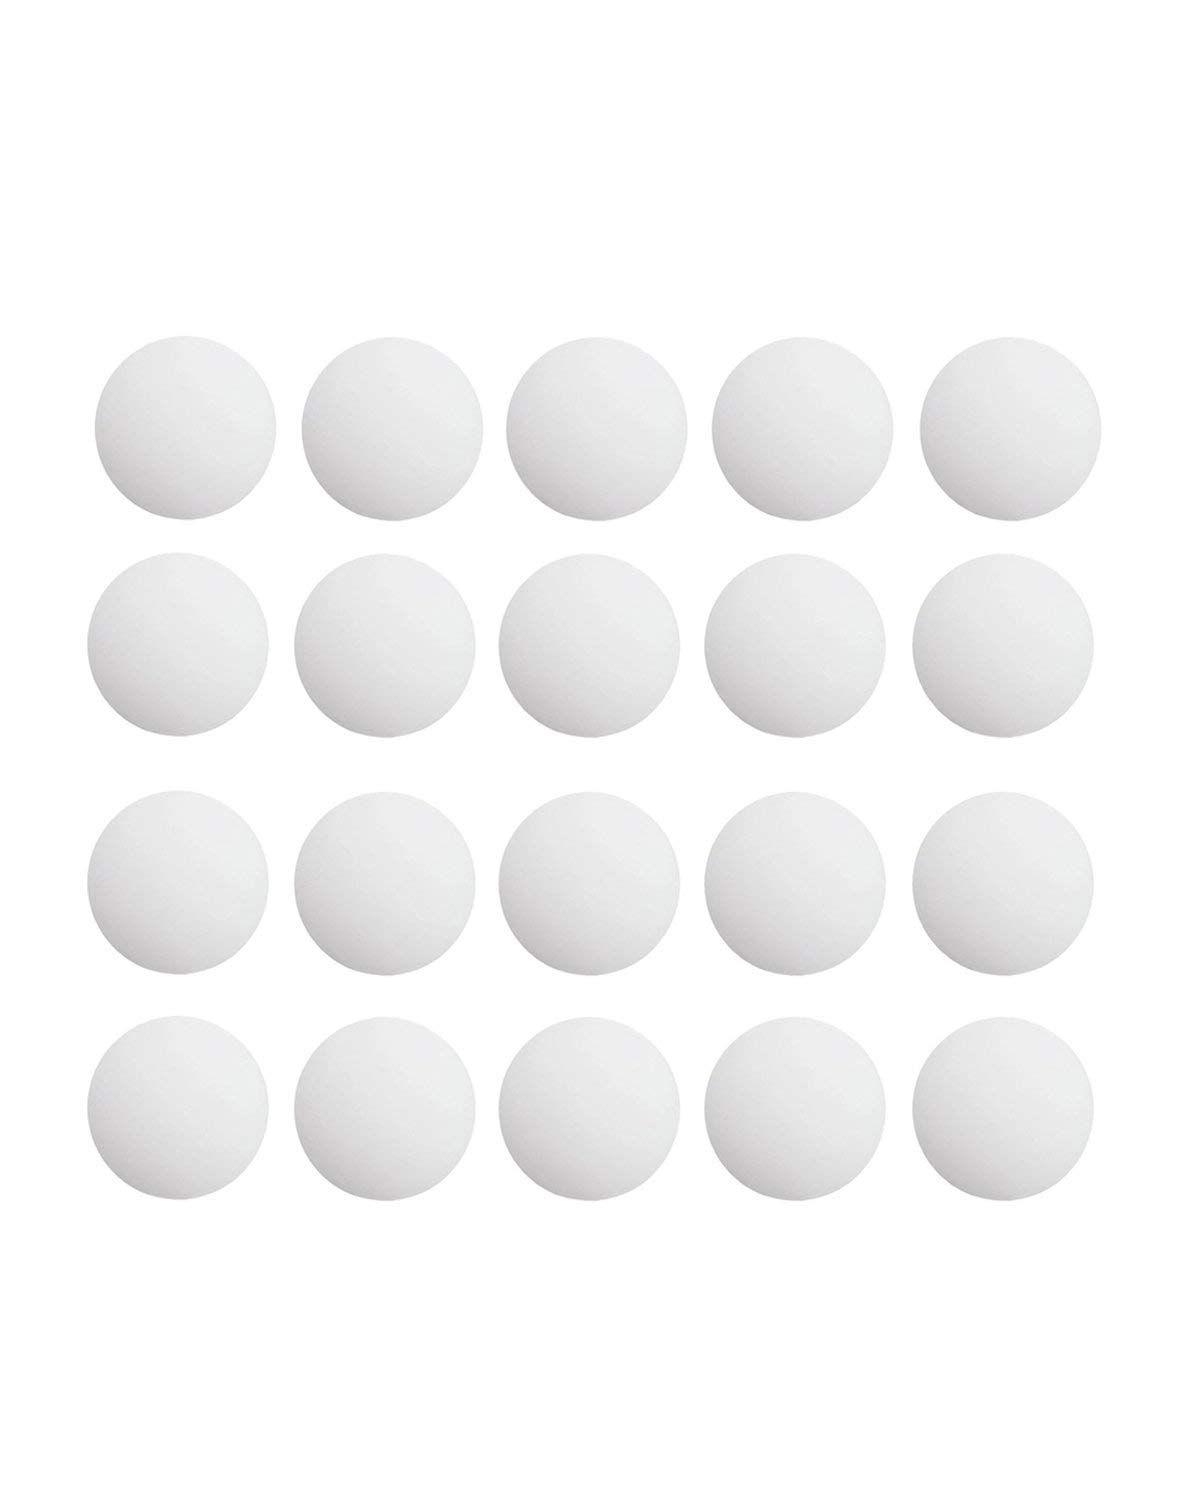 20 PCS Goft Design Door Stopper 1.57 Inch Bumper Silicone Wall Protector Guard with Self Adhesive 3M Sticker White